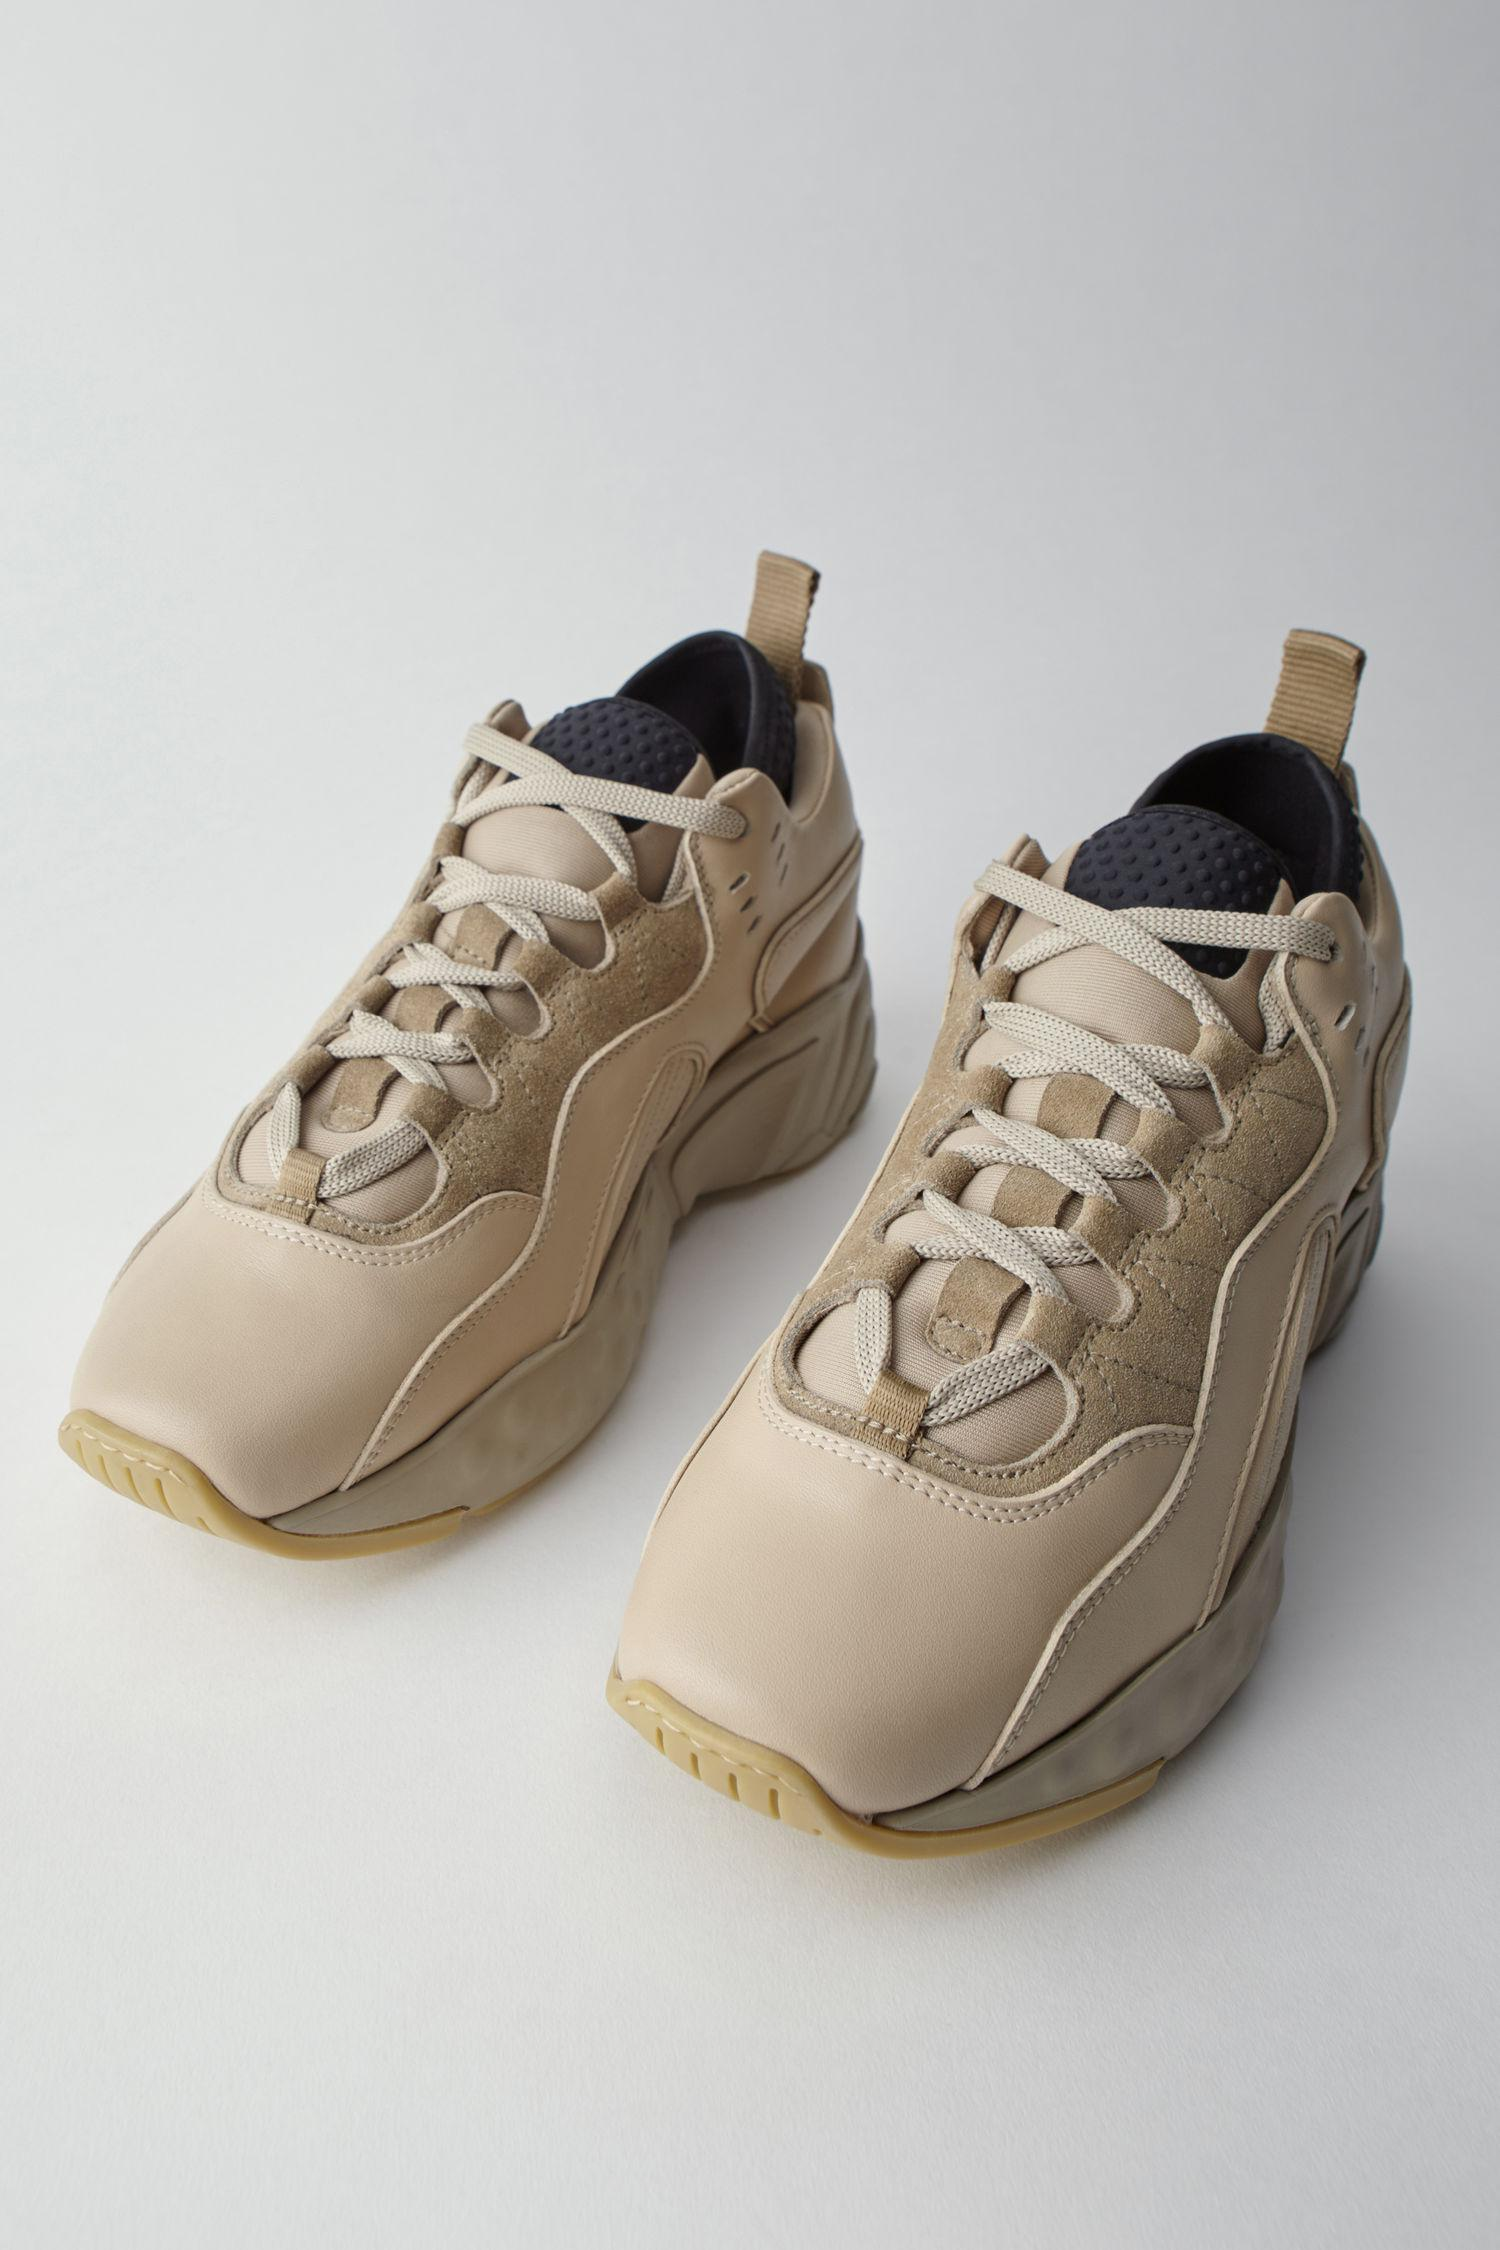 Leather Technical Sneakers multi Beige